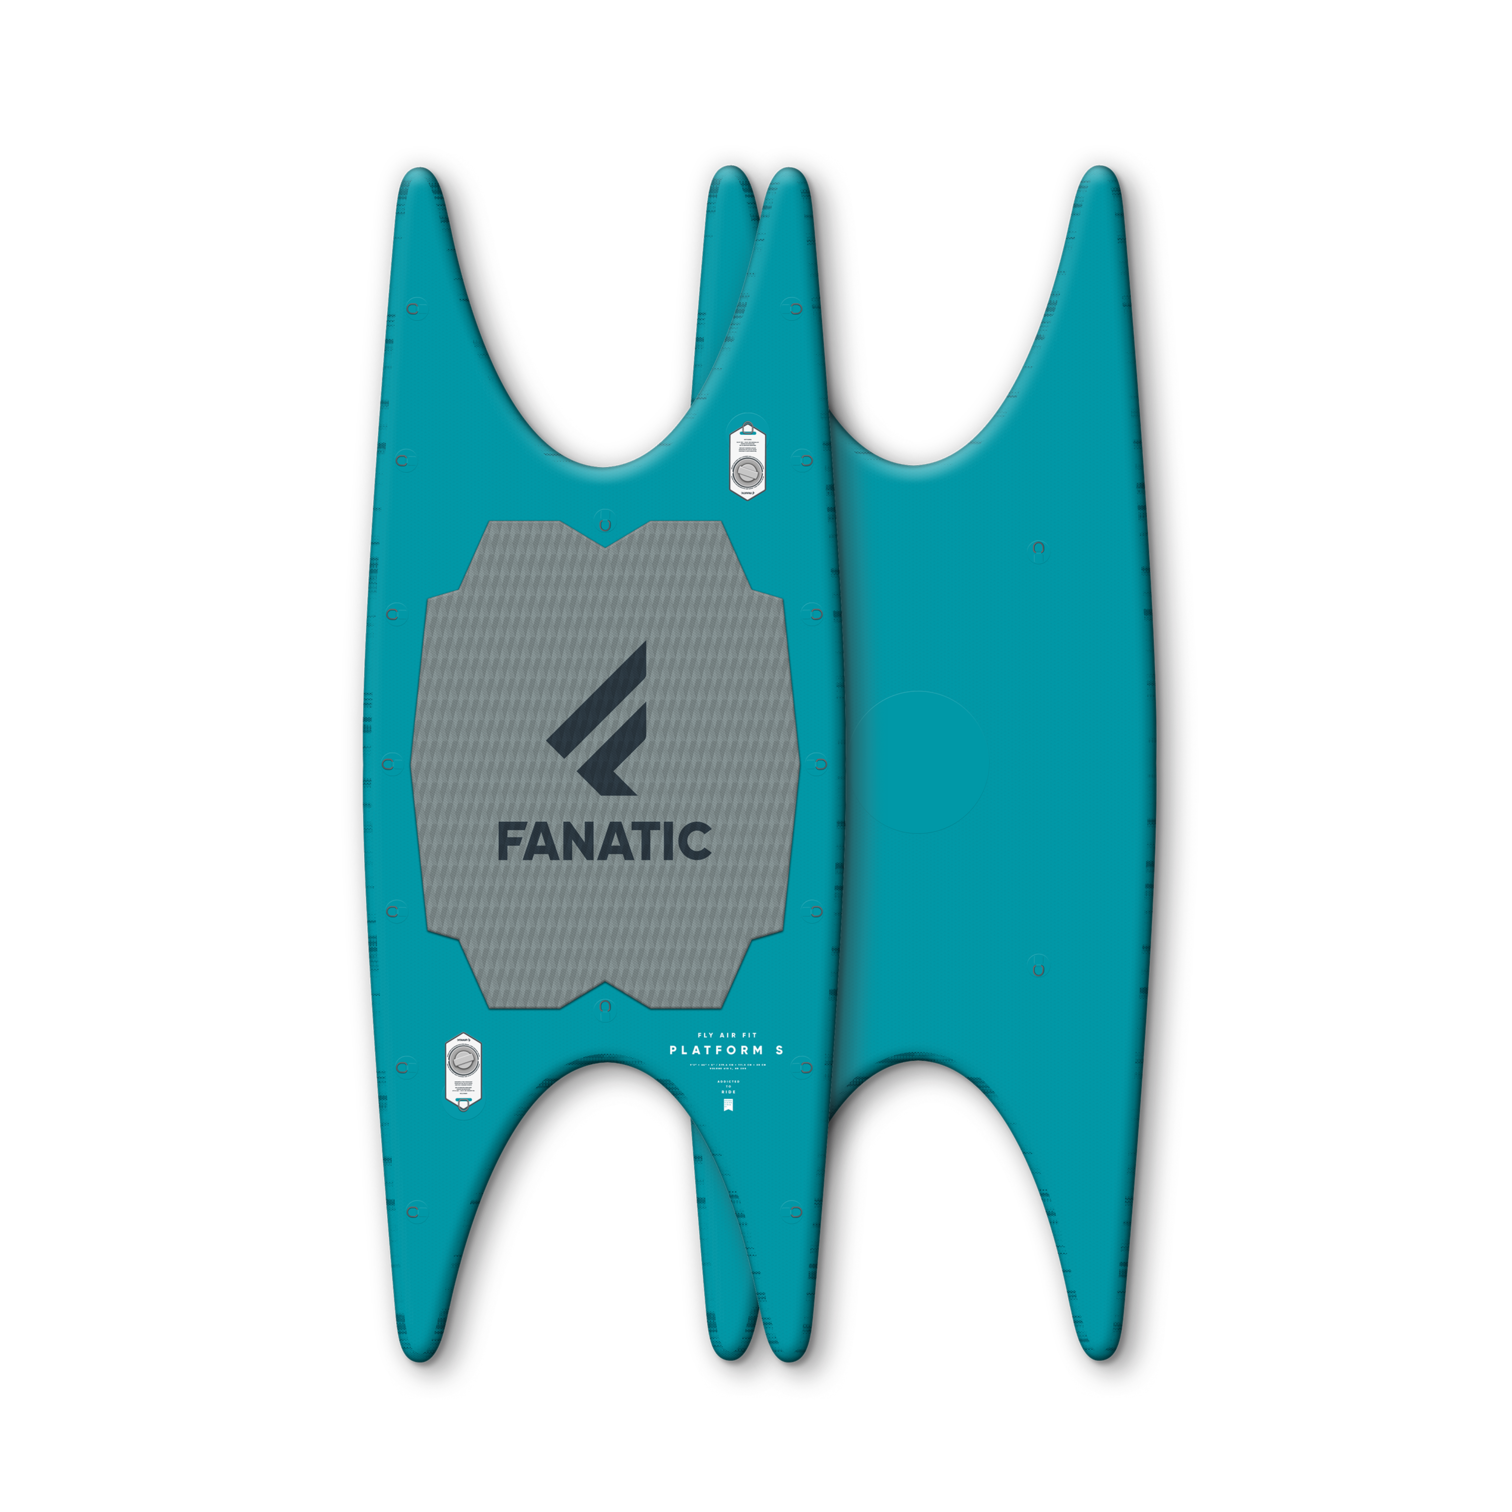 Fanatic Fit Platform S 9.2 x 44